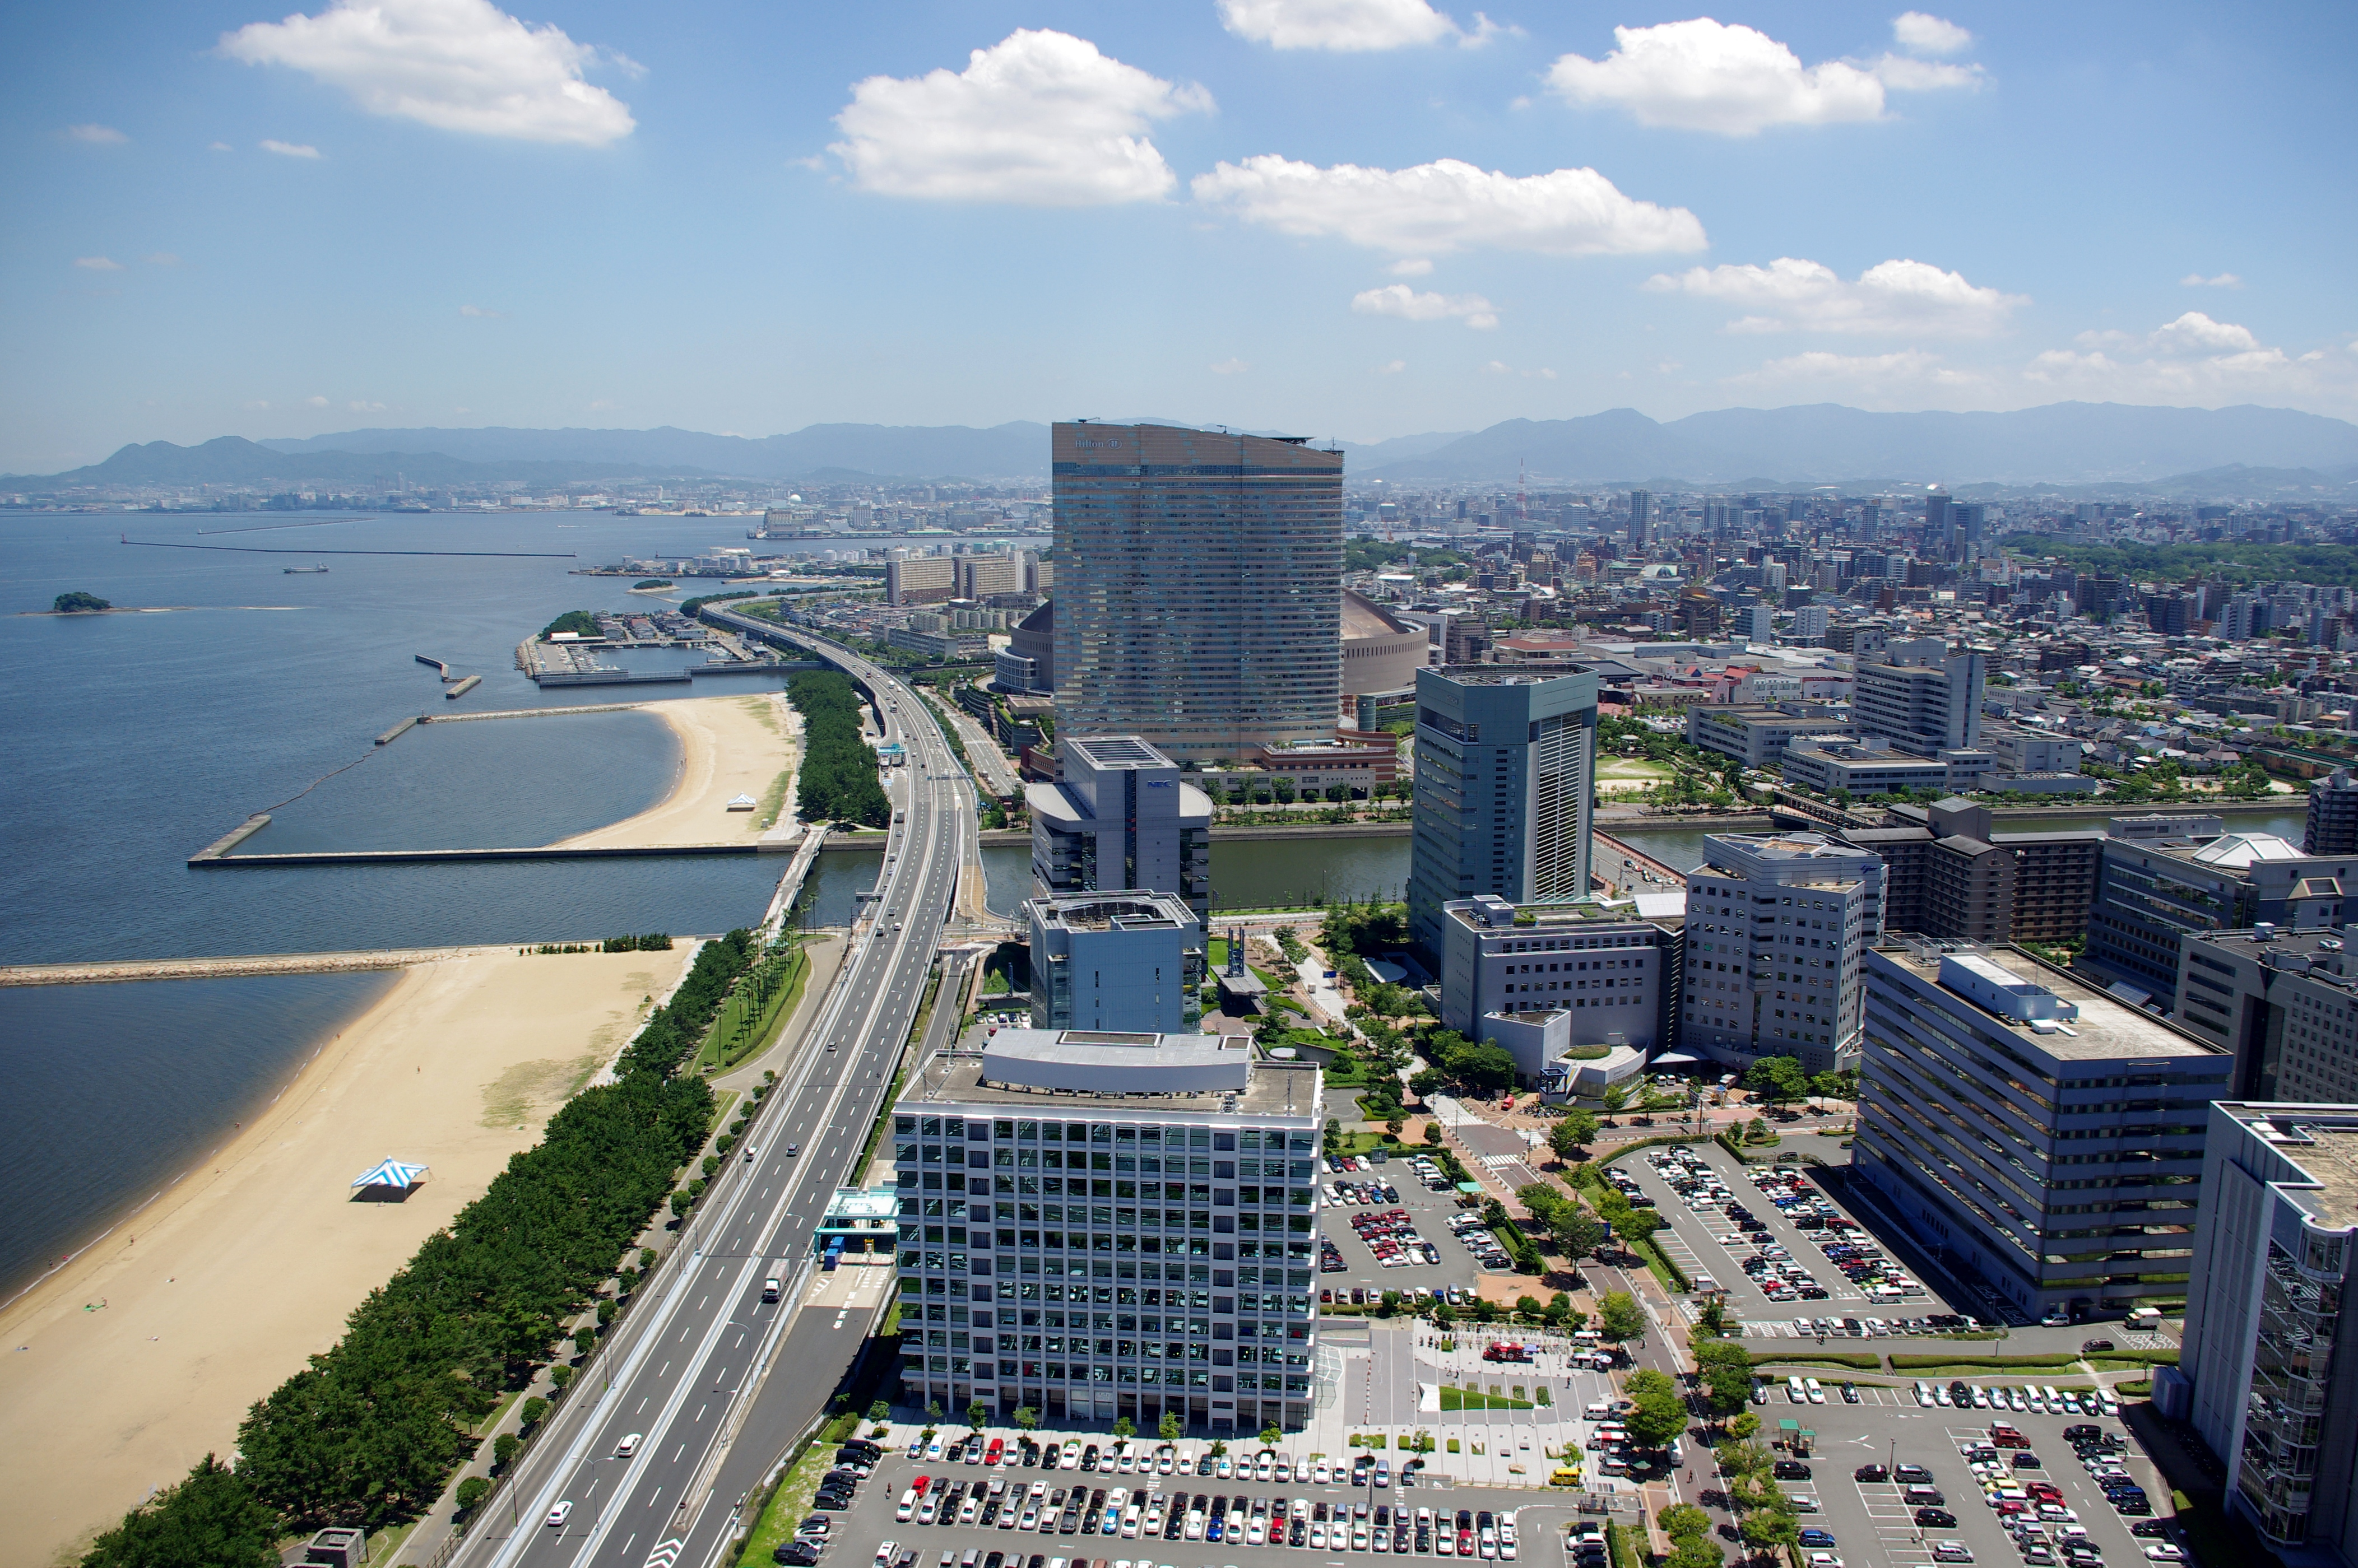 Essential Fukuoka: 5 Attractions to Get a Real Taste of the City